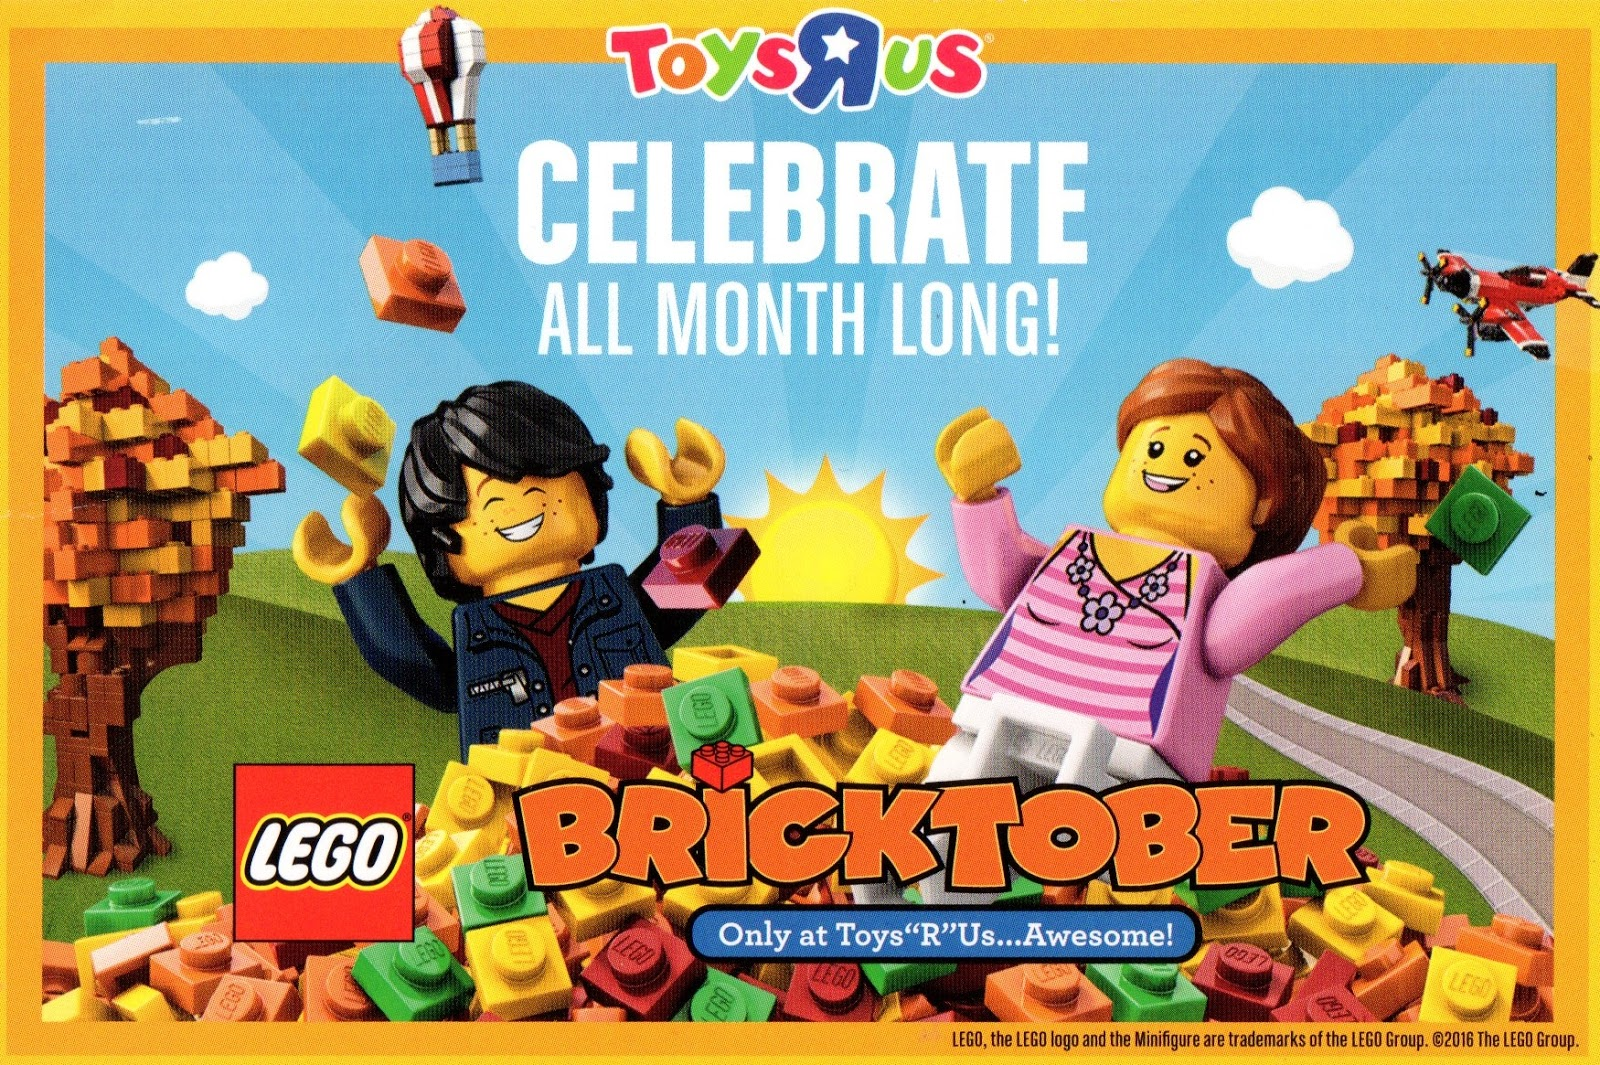 visit toysruscomlego or click here for details